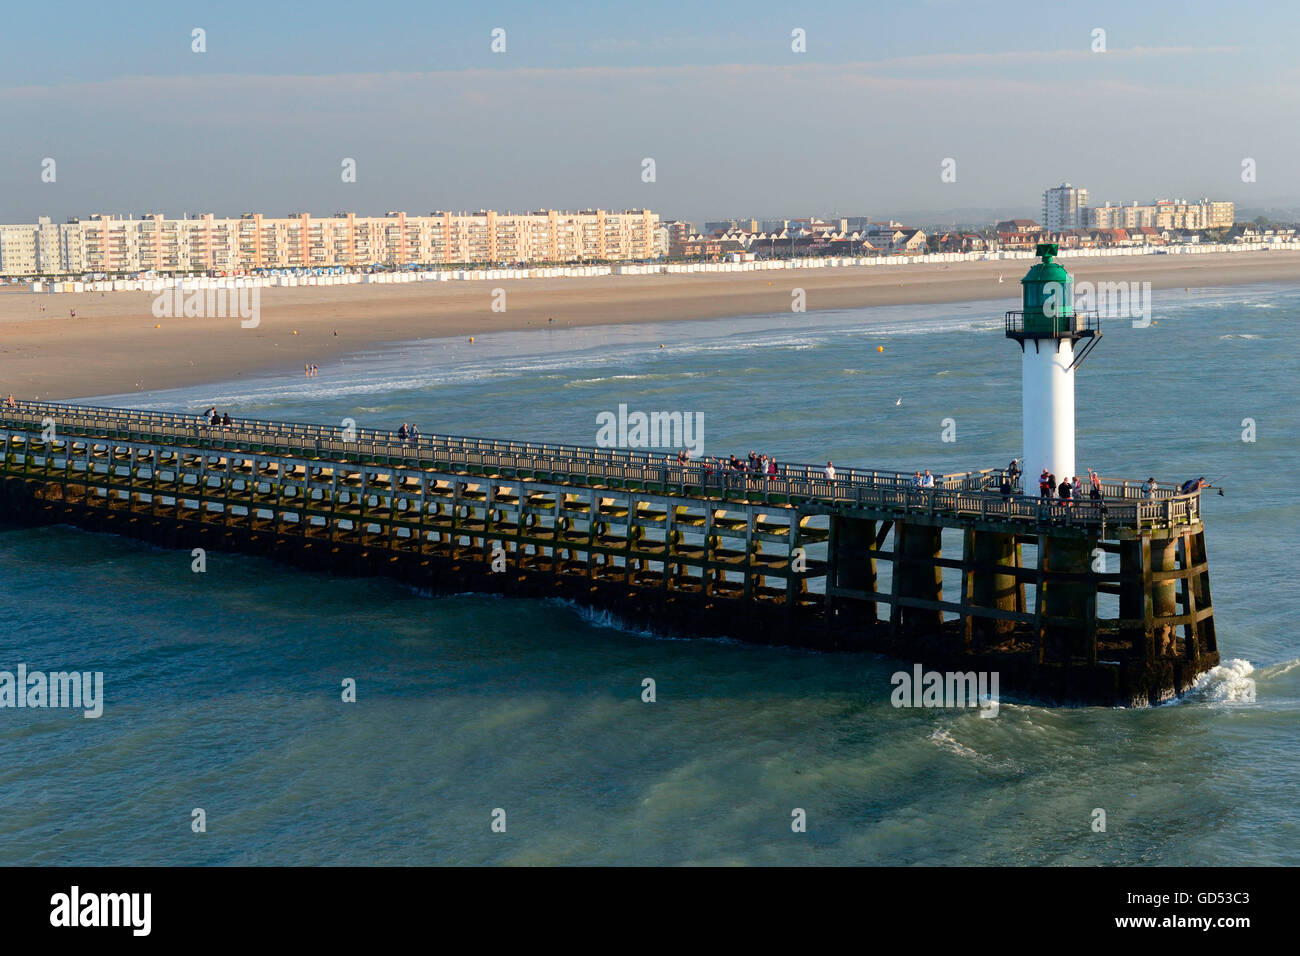 Harbour entrance and beach, Calais, France - Stock Image